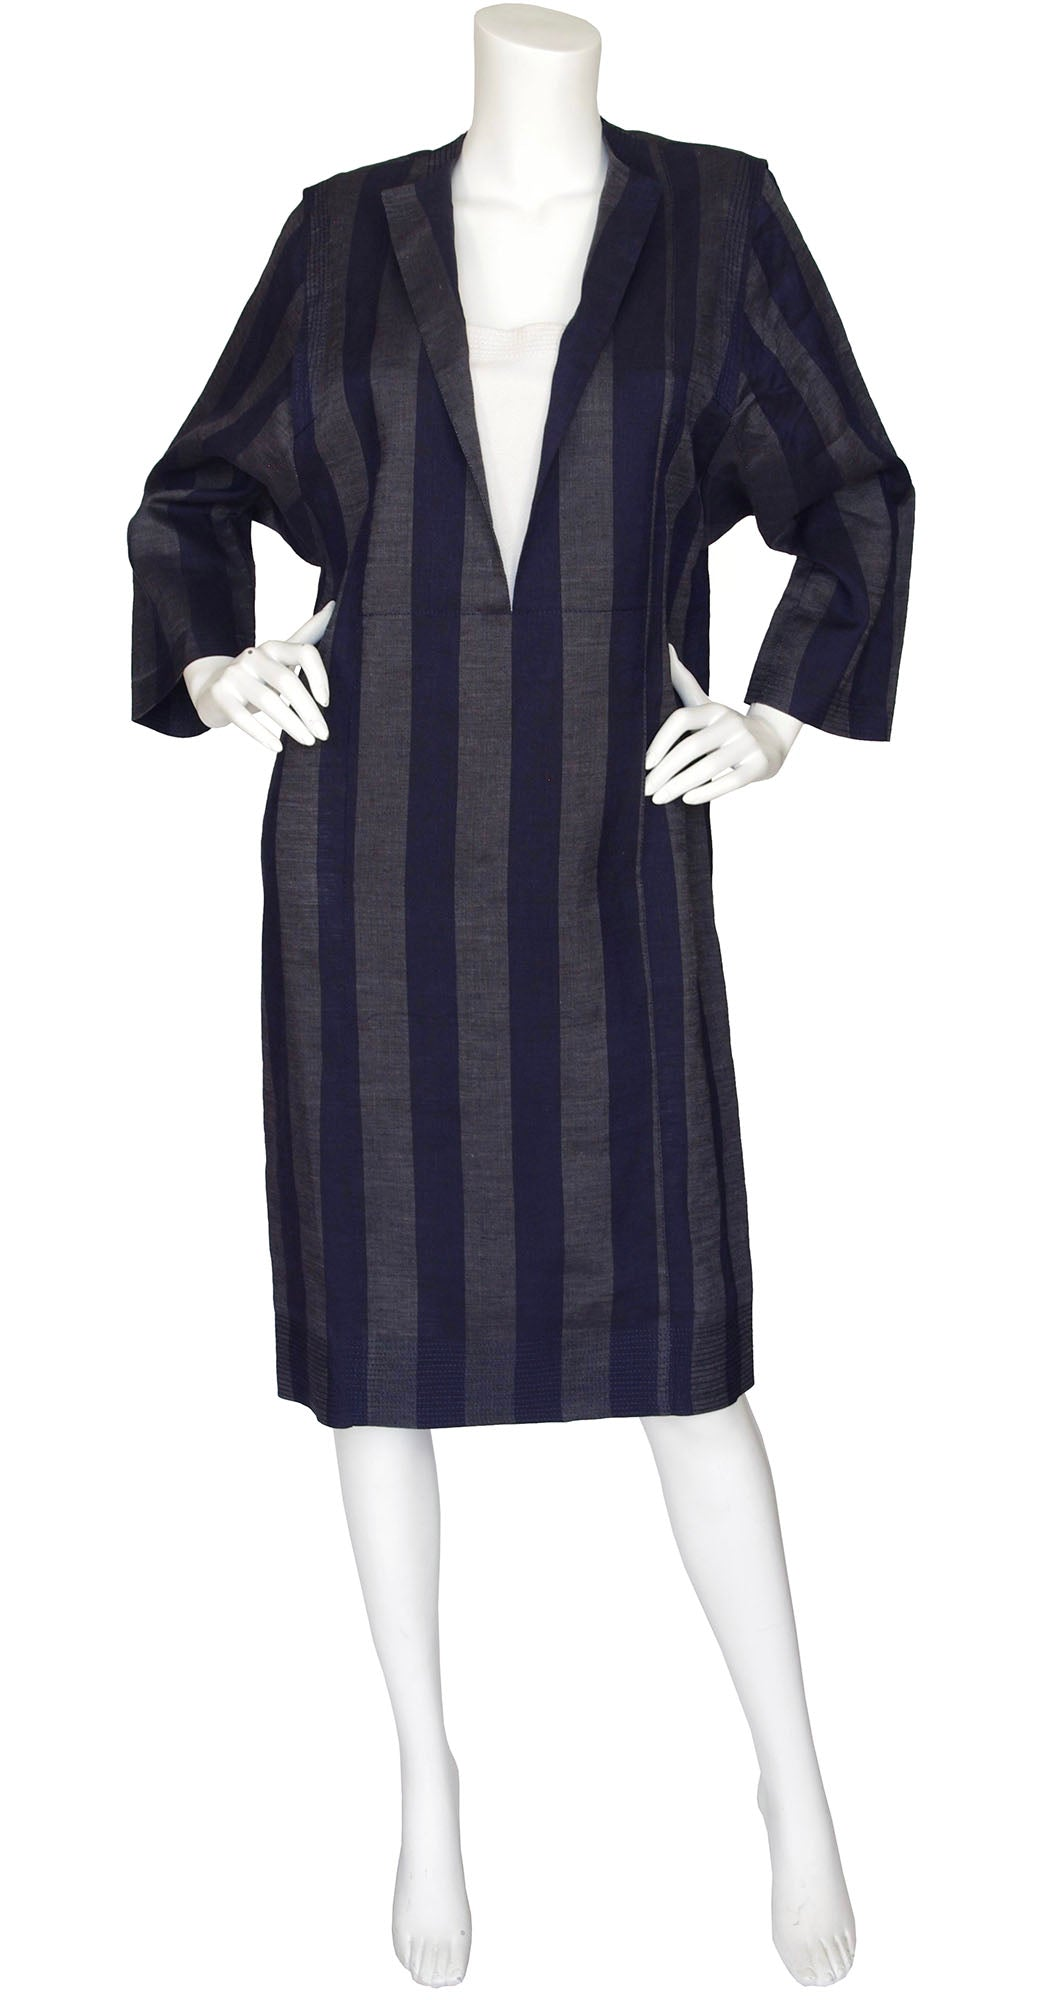 1980s Striped Pure Linen Day Dress